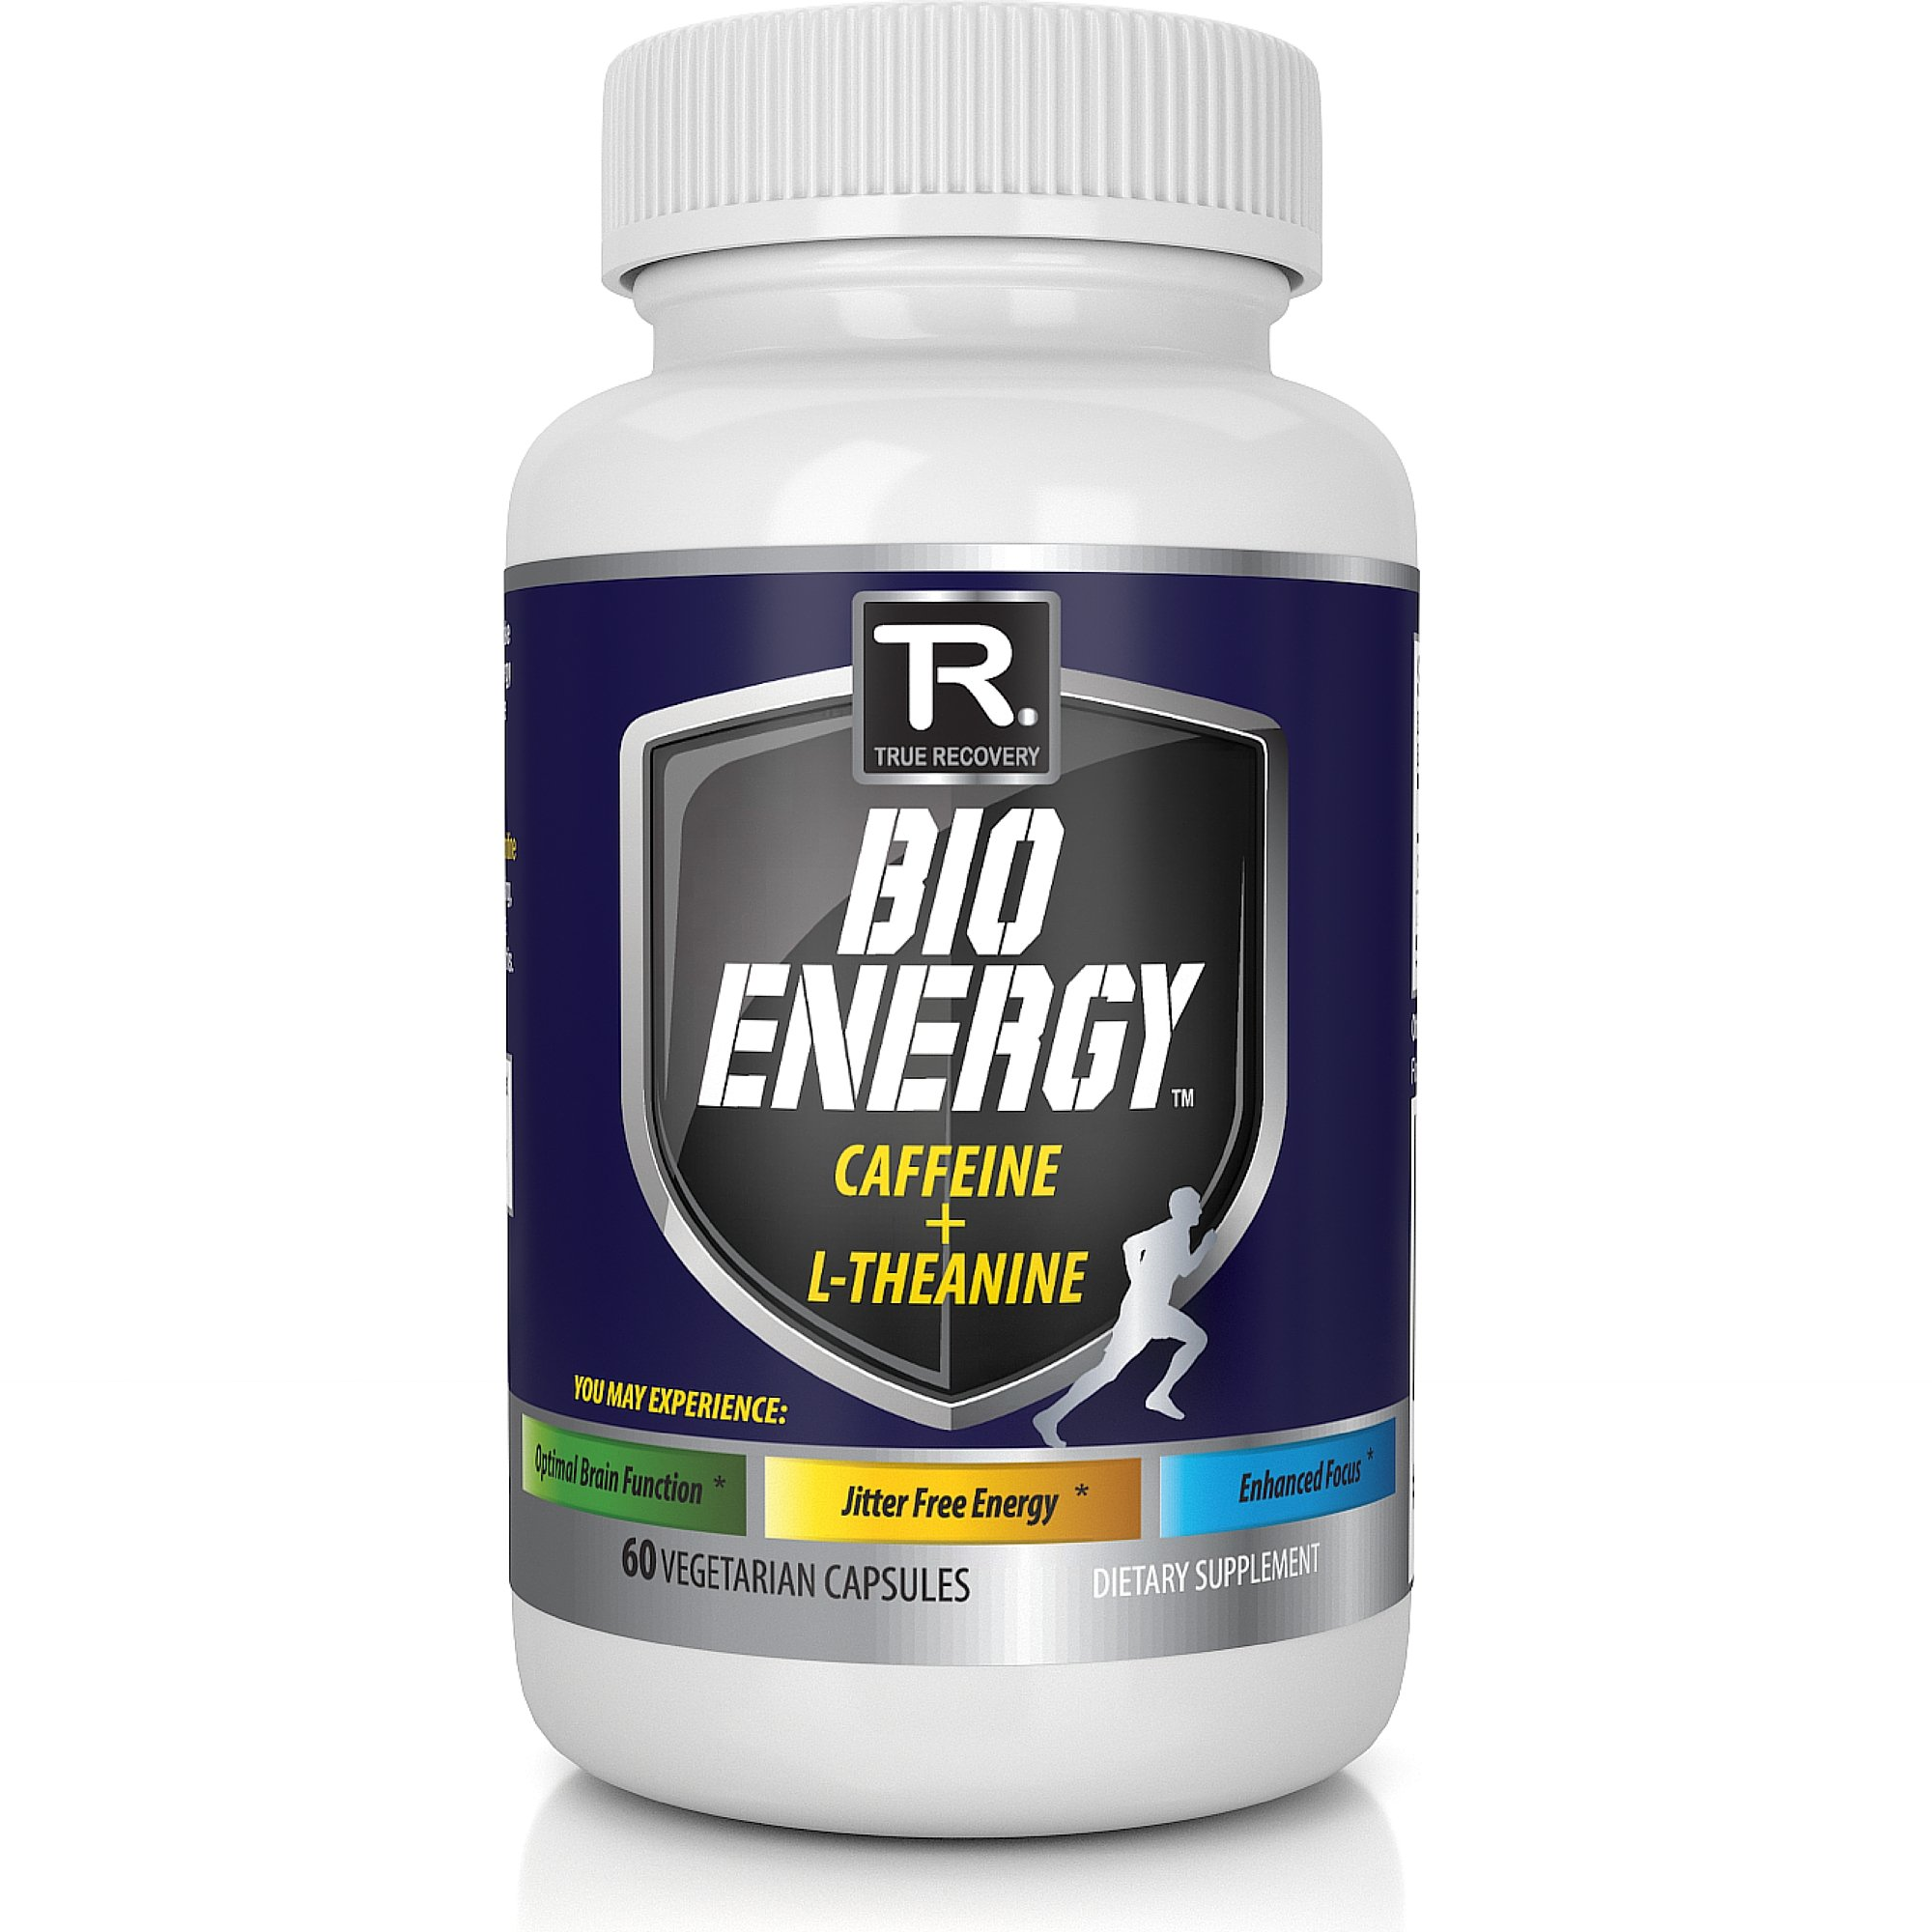 Nootropic Energy Pills and Focus Supplement; Caffeine and L-Theanine - TR Supplements